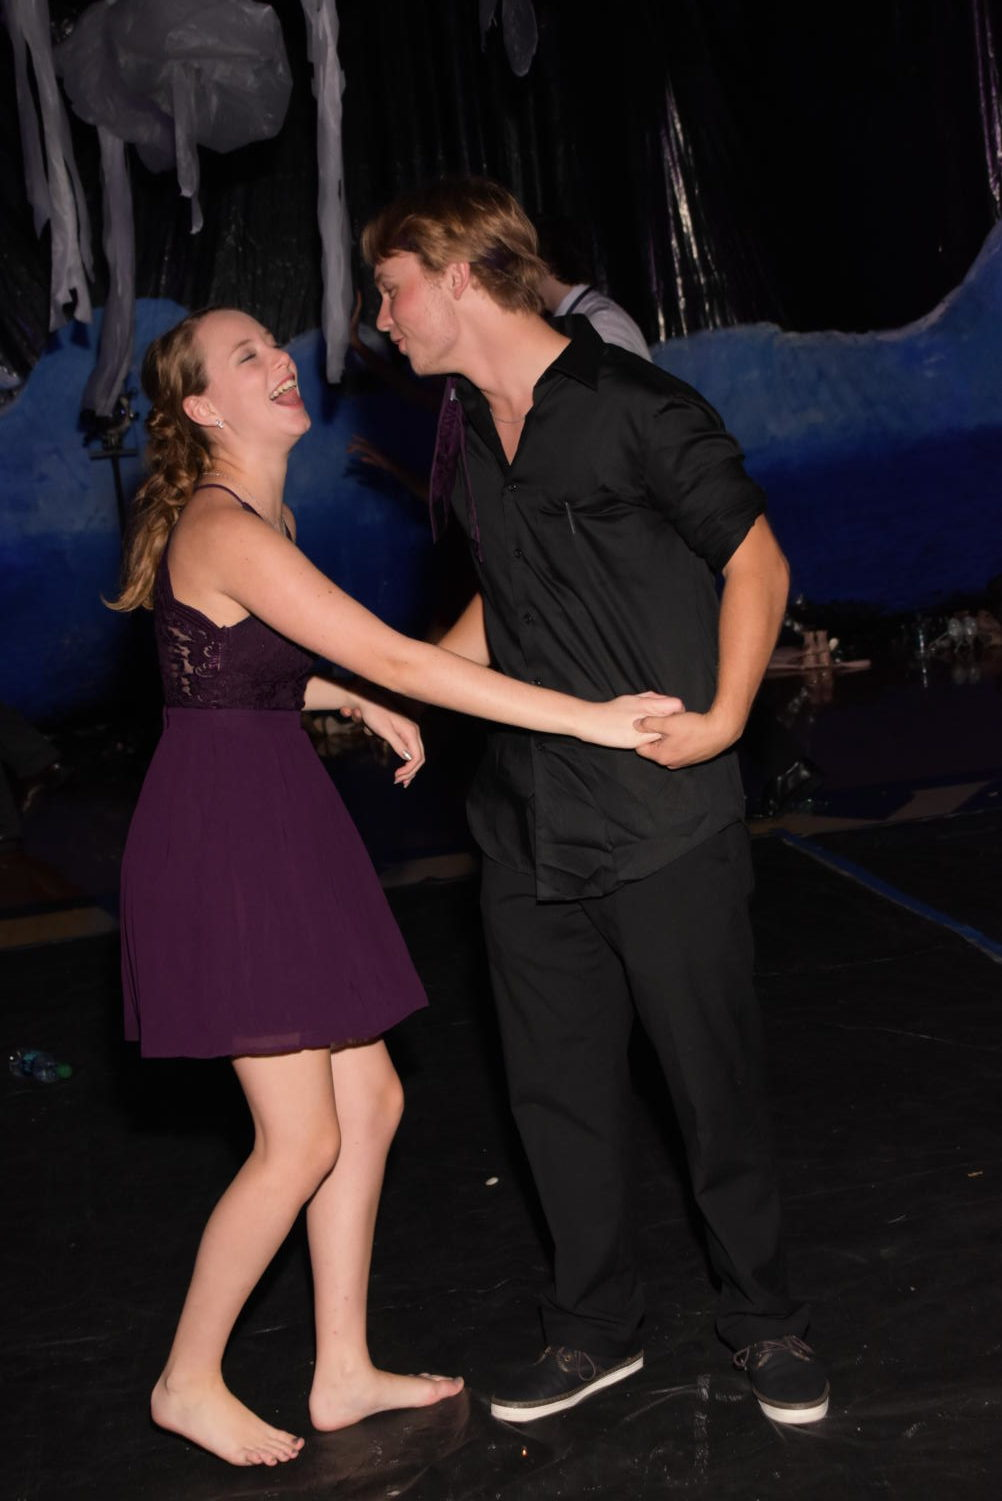 Juniors Audrey Feicht and Caleb Wells share a funny moment while on the Homecoming dance floor.